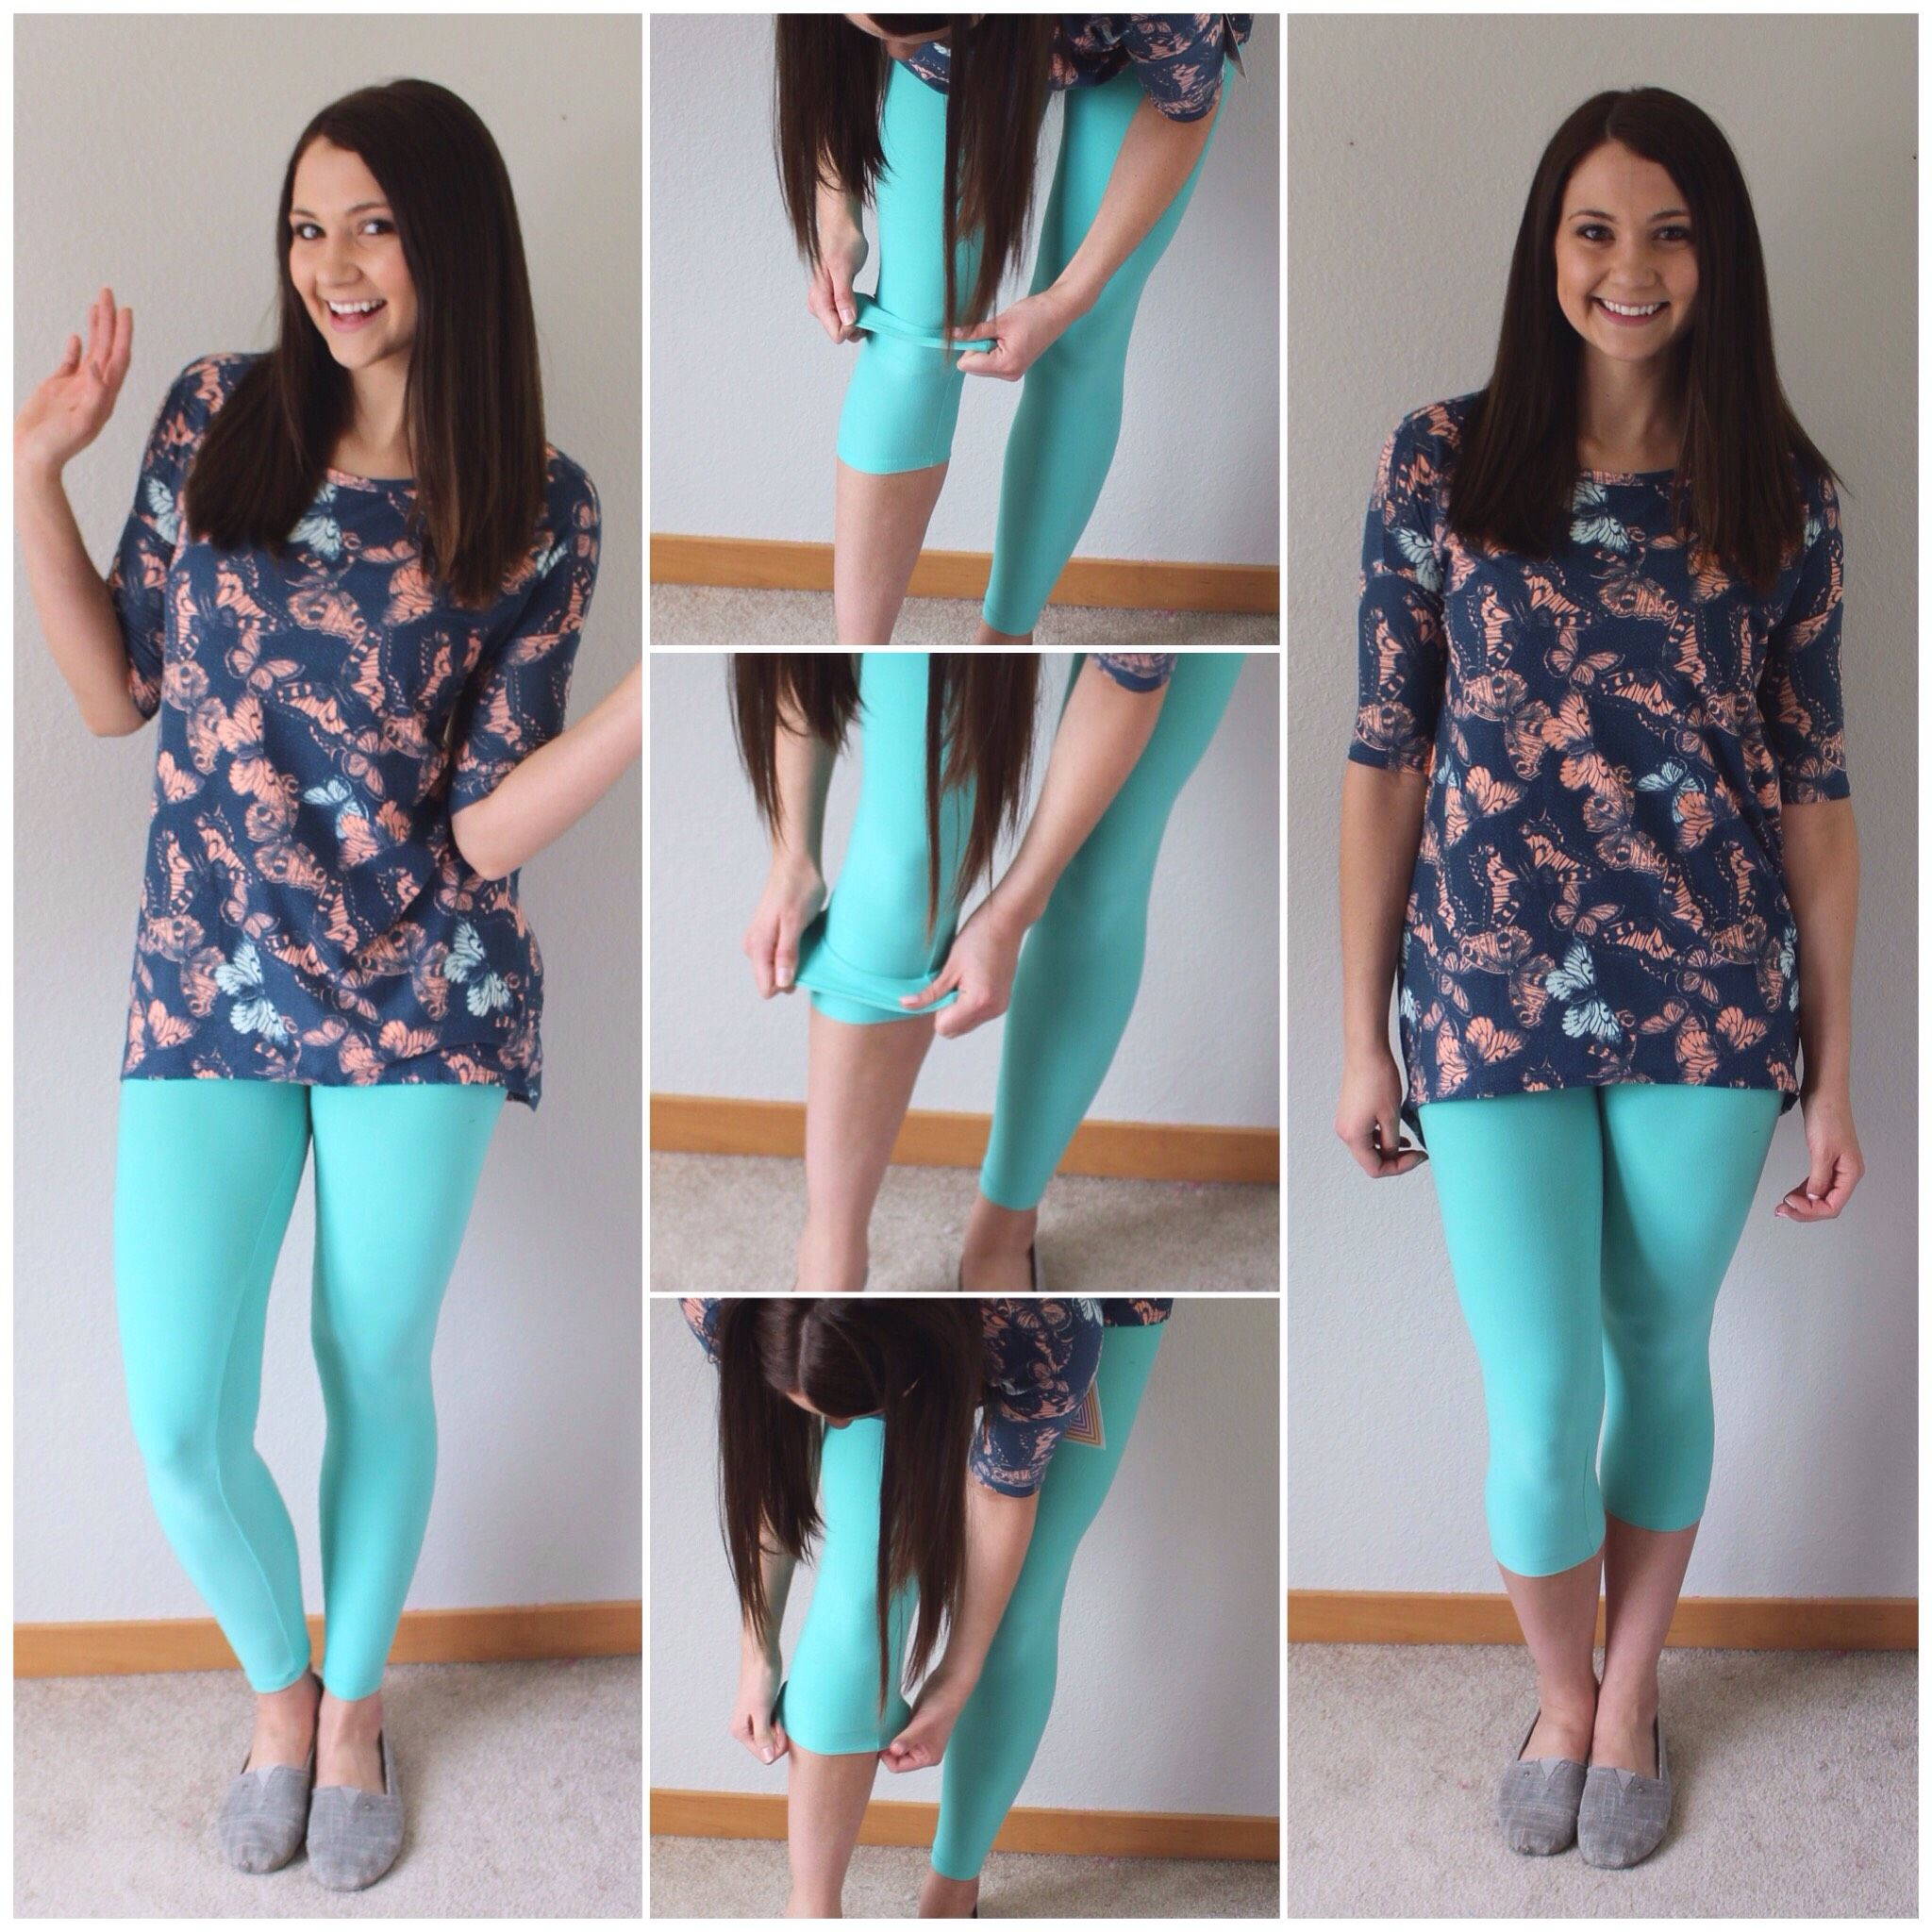 a4d51309c5 Wear #leggings full length or use this technique for capris! #lularoe # outfit…